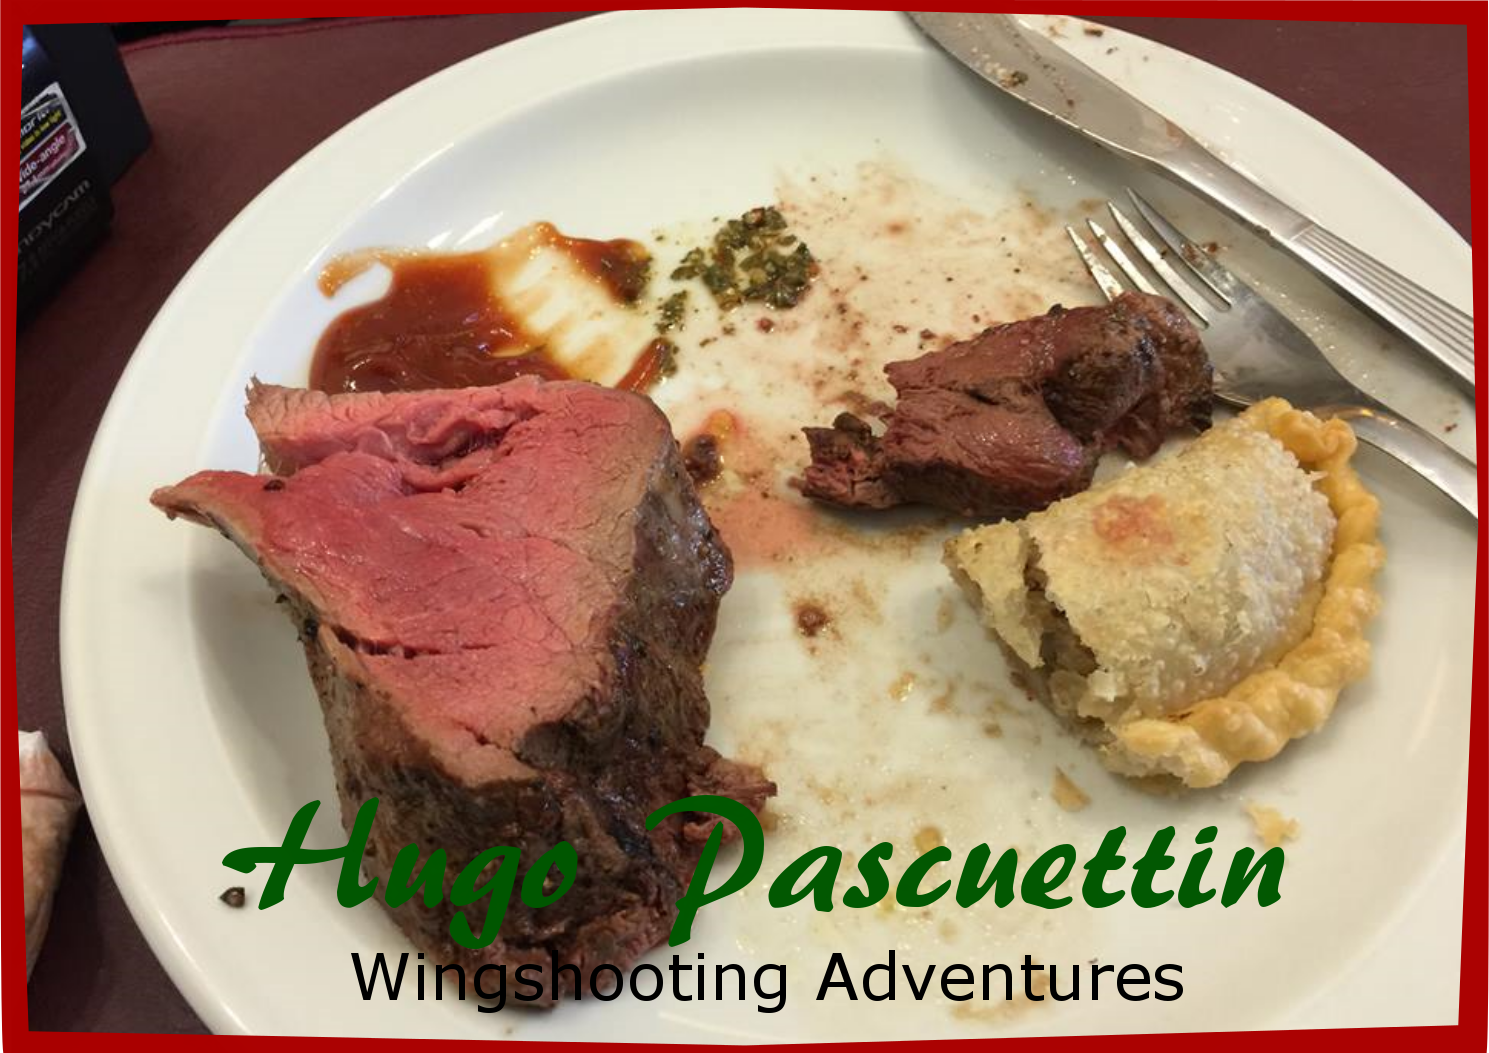 Wingshooting Adventures